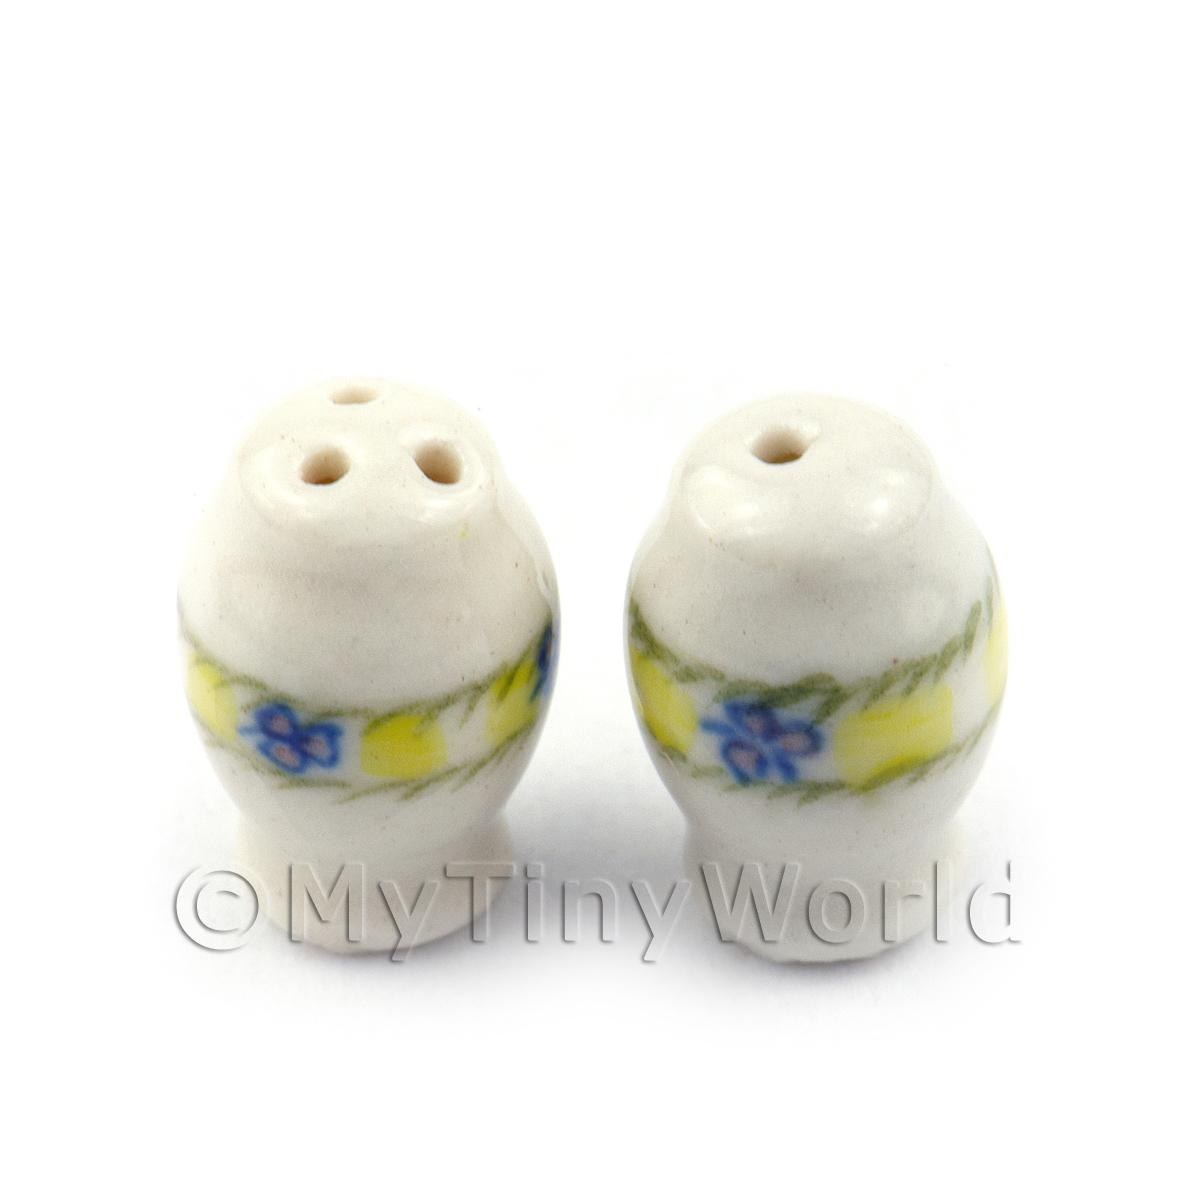 Dolls House Miniature Ceramic Salt And Pepper Pot